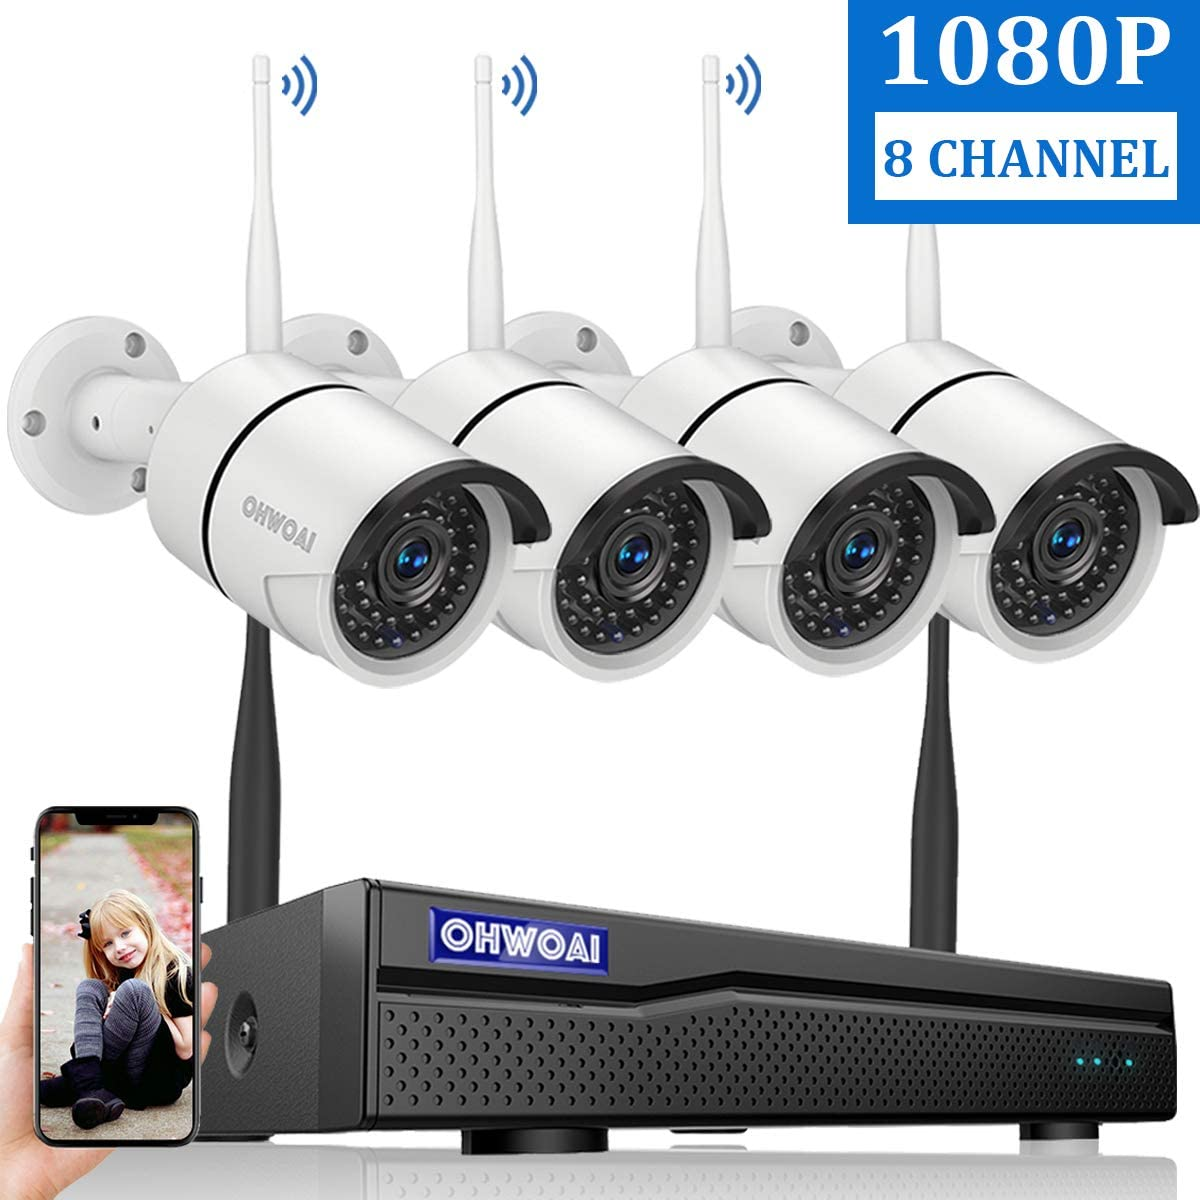 【2020 New 8CH Expandable】OHWOAI Security Camera System Wireless, 8CH 1080P NVR, 4Pcs 1080P HD Outdoor/ Indoor IP Cameras,Home CCTV Surveillance System (No Hard Drive)Waterproof,Remote Access,Plug&Play 61F2rtHe5rLSL1200_